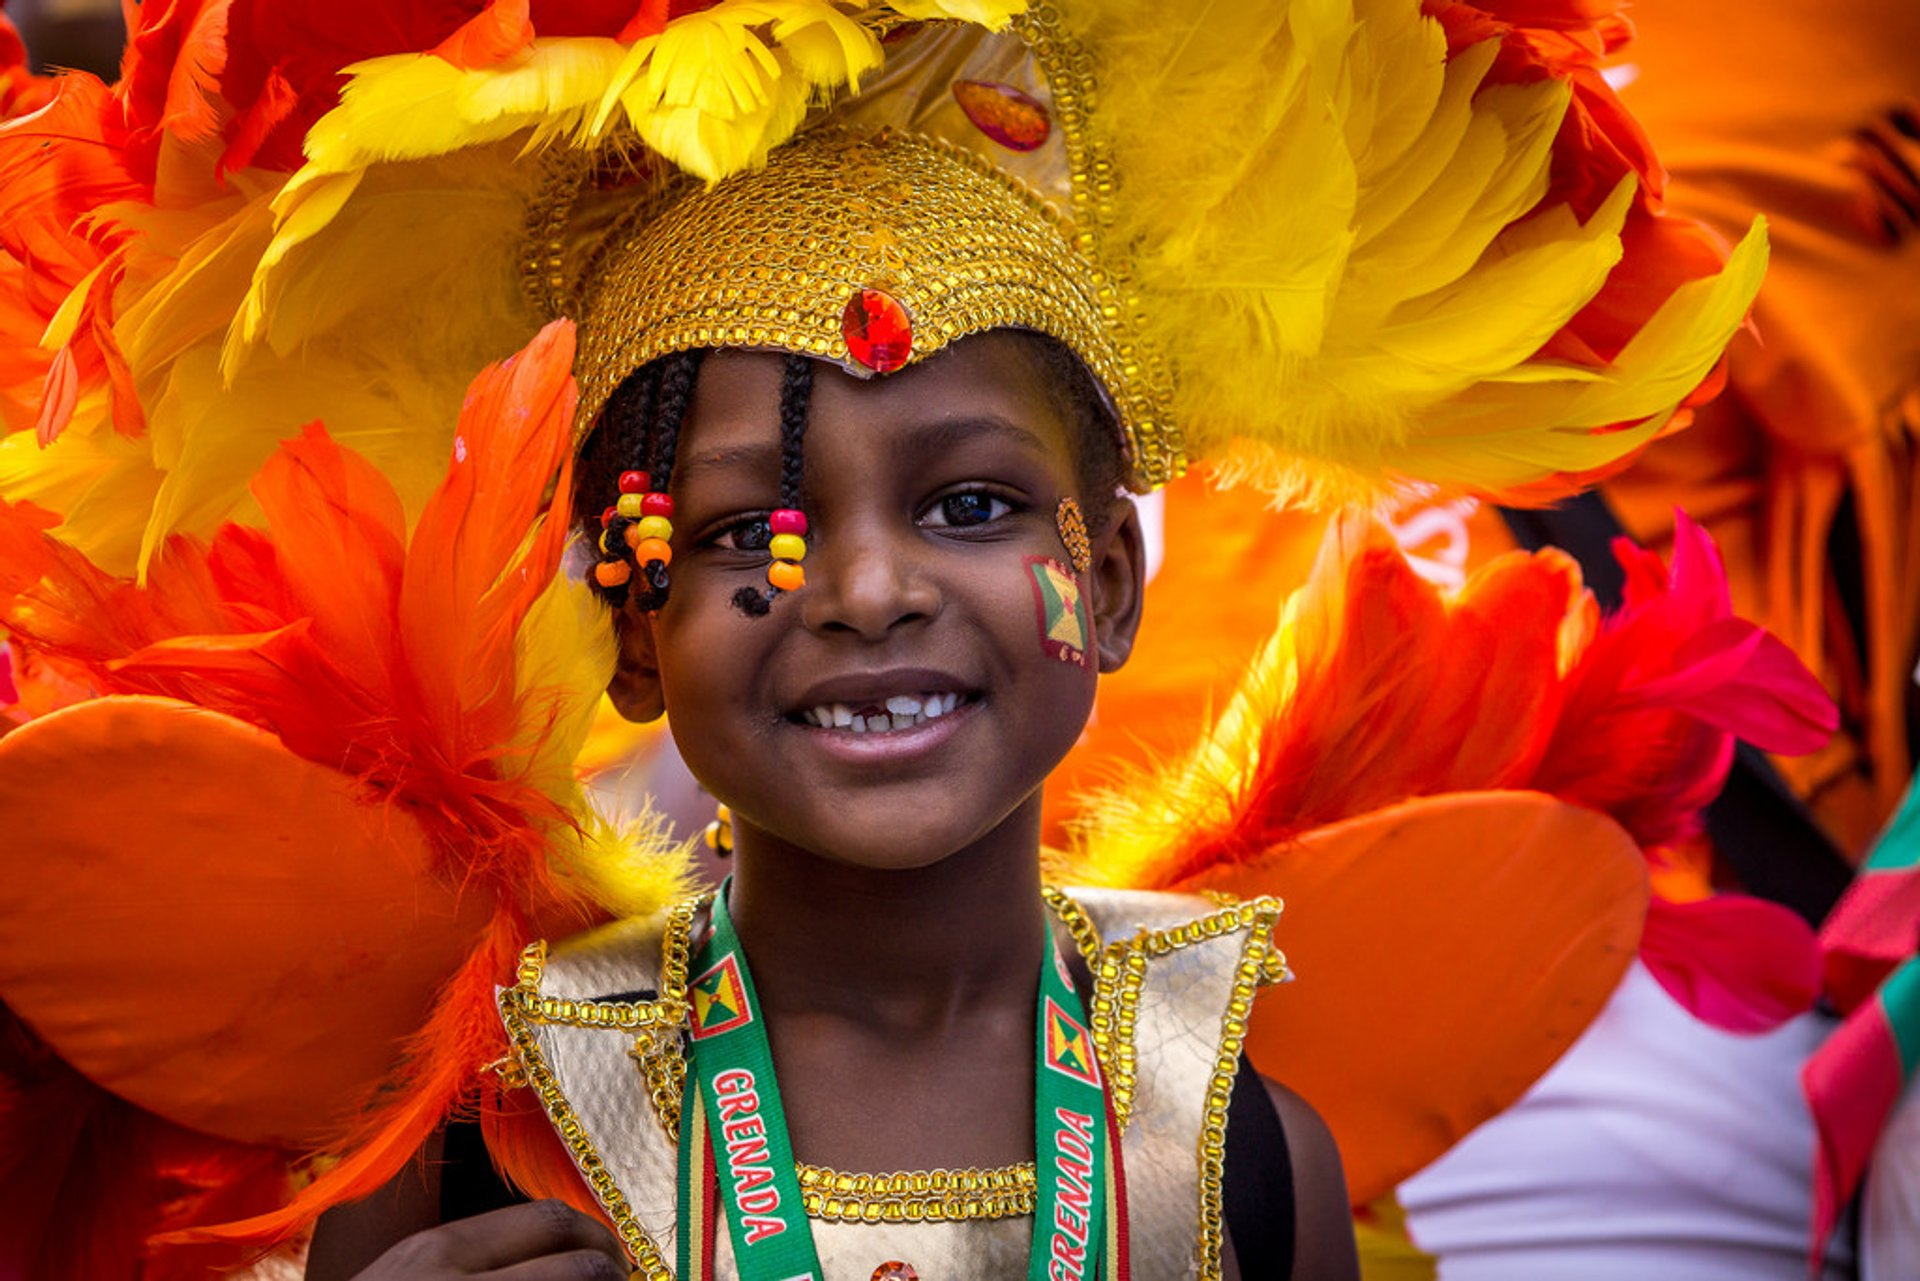 Notting Hill Carnival in London - Best Season 2020